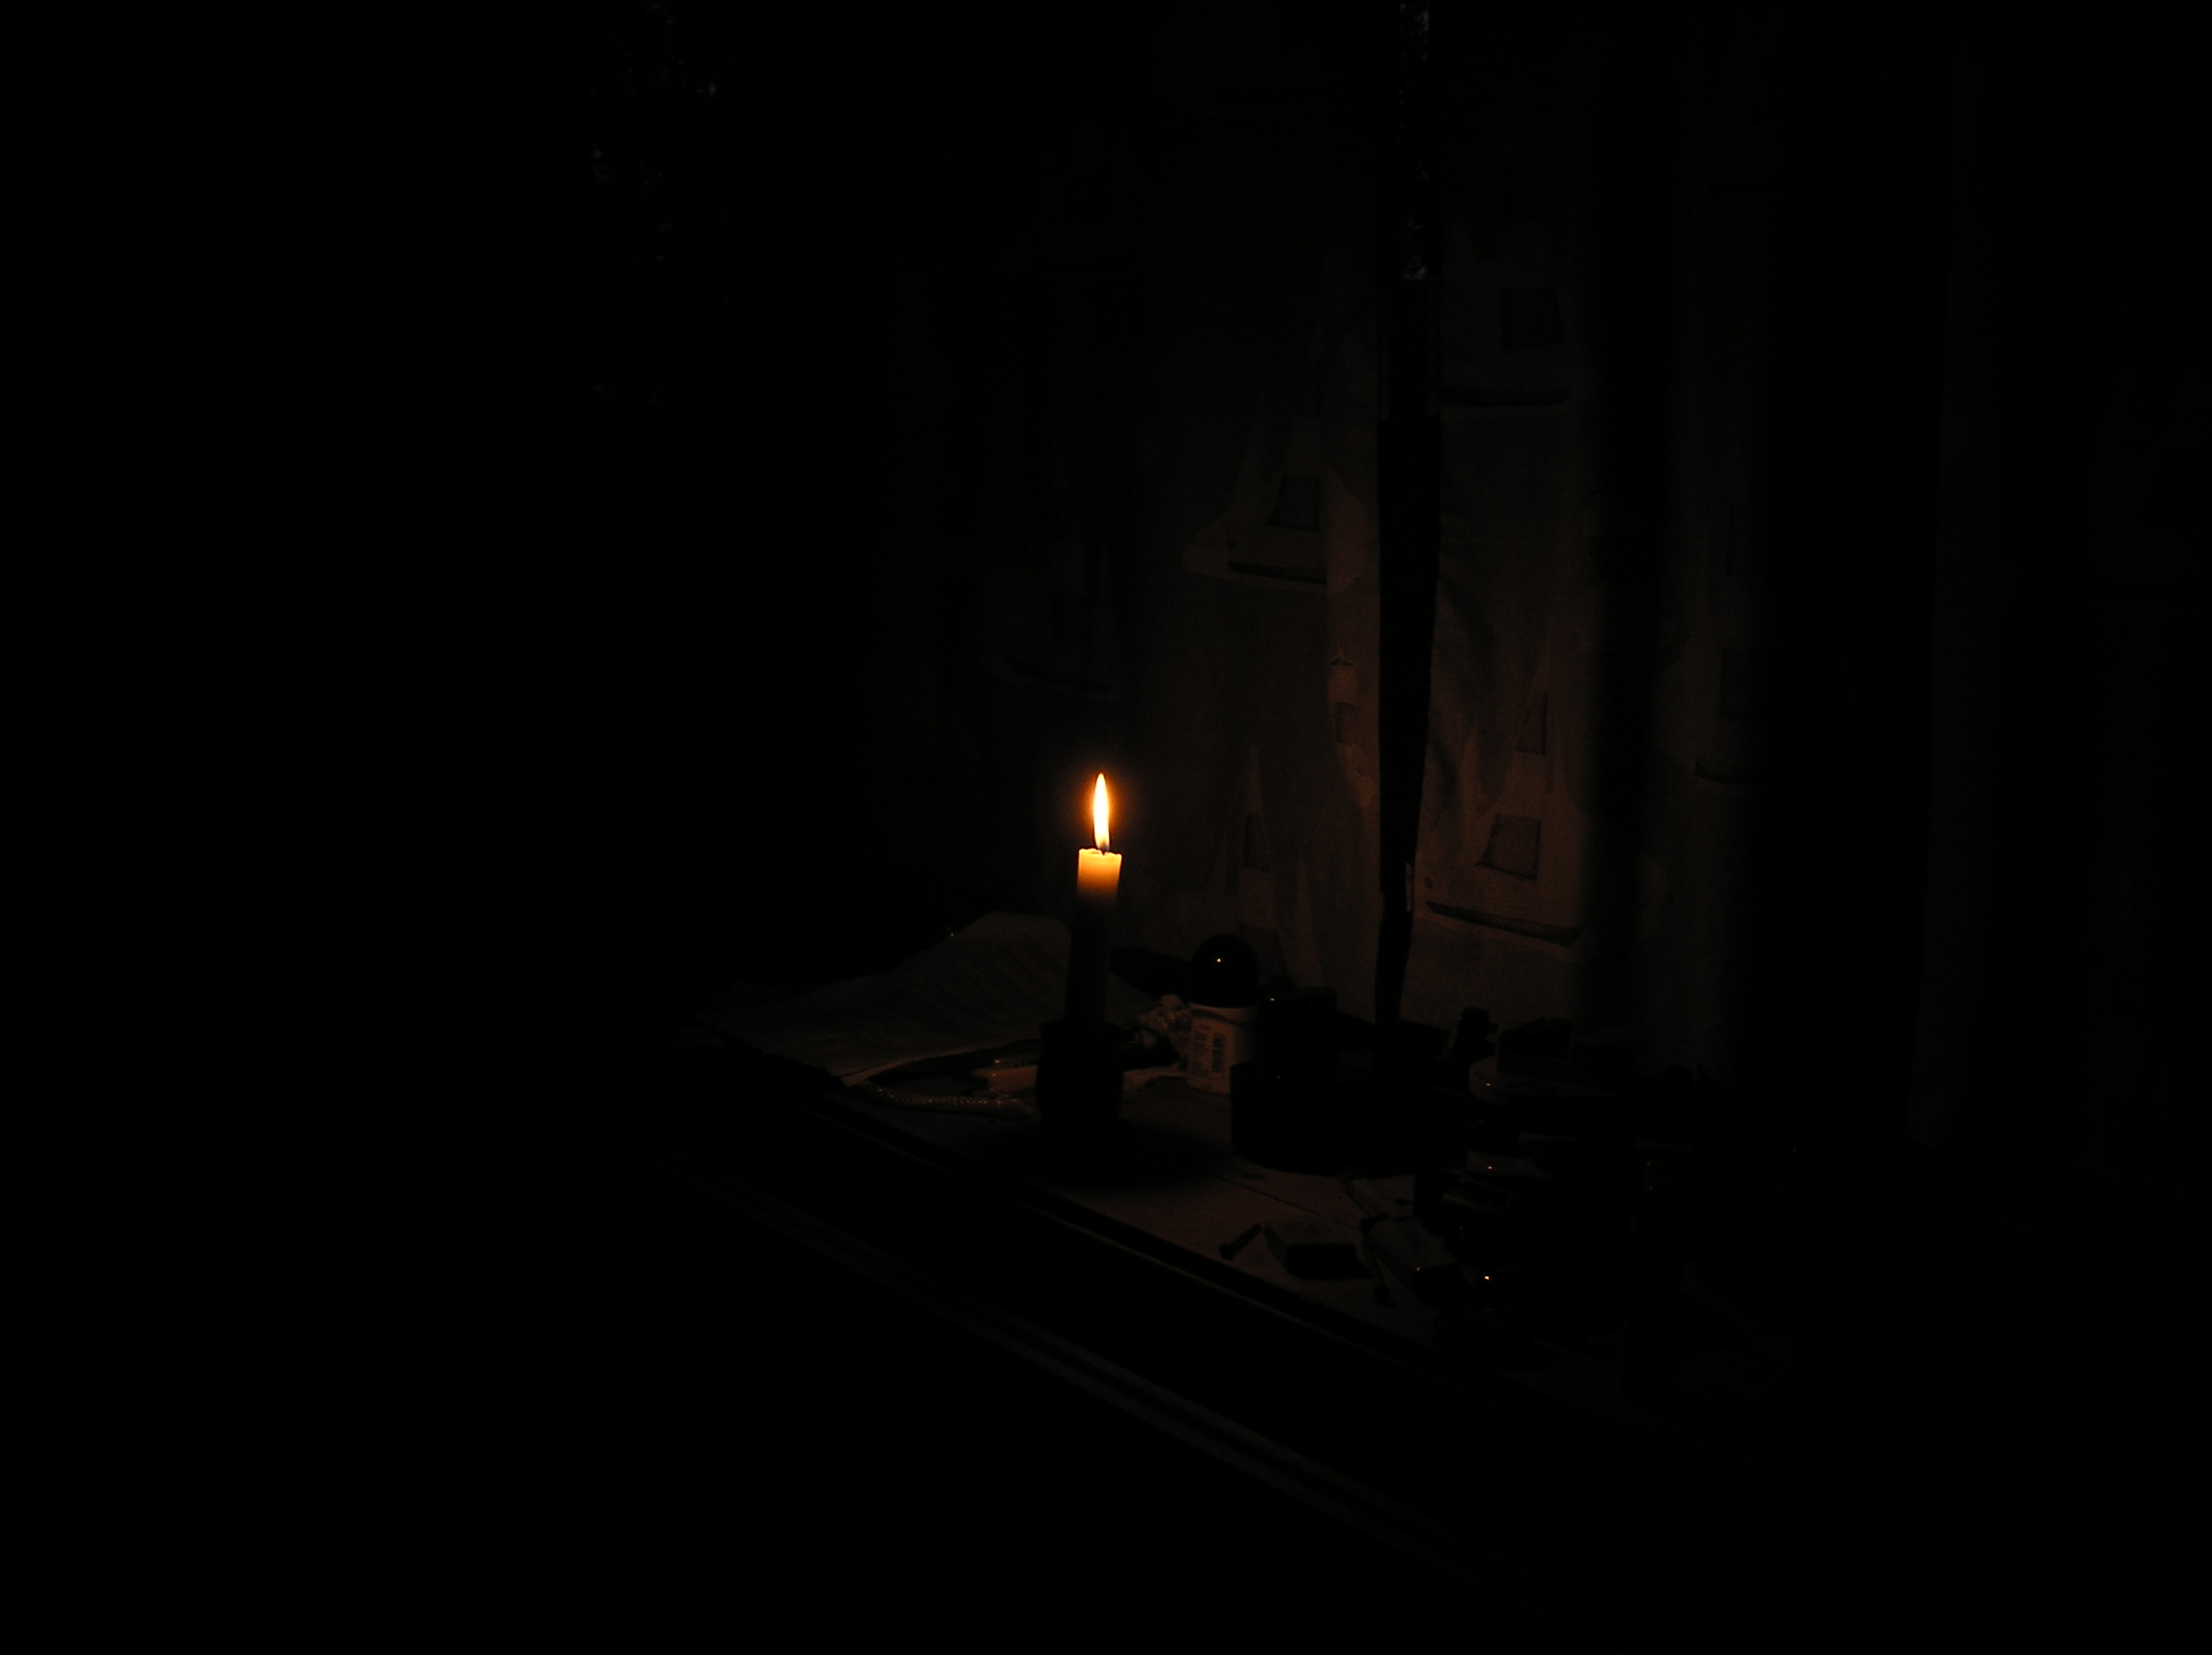 Dark room with candle light - Dark Room With Candle Light 5